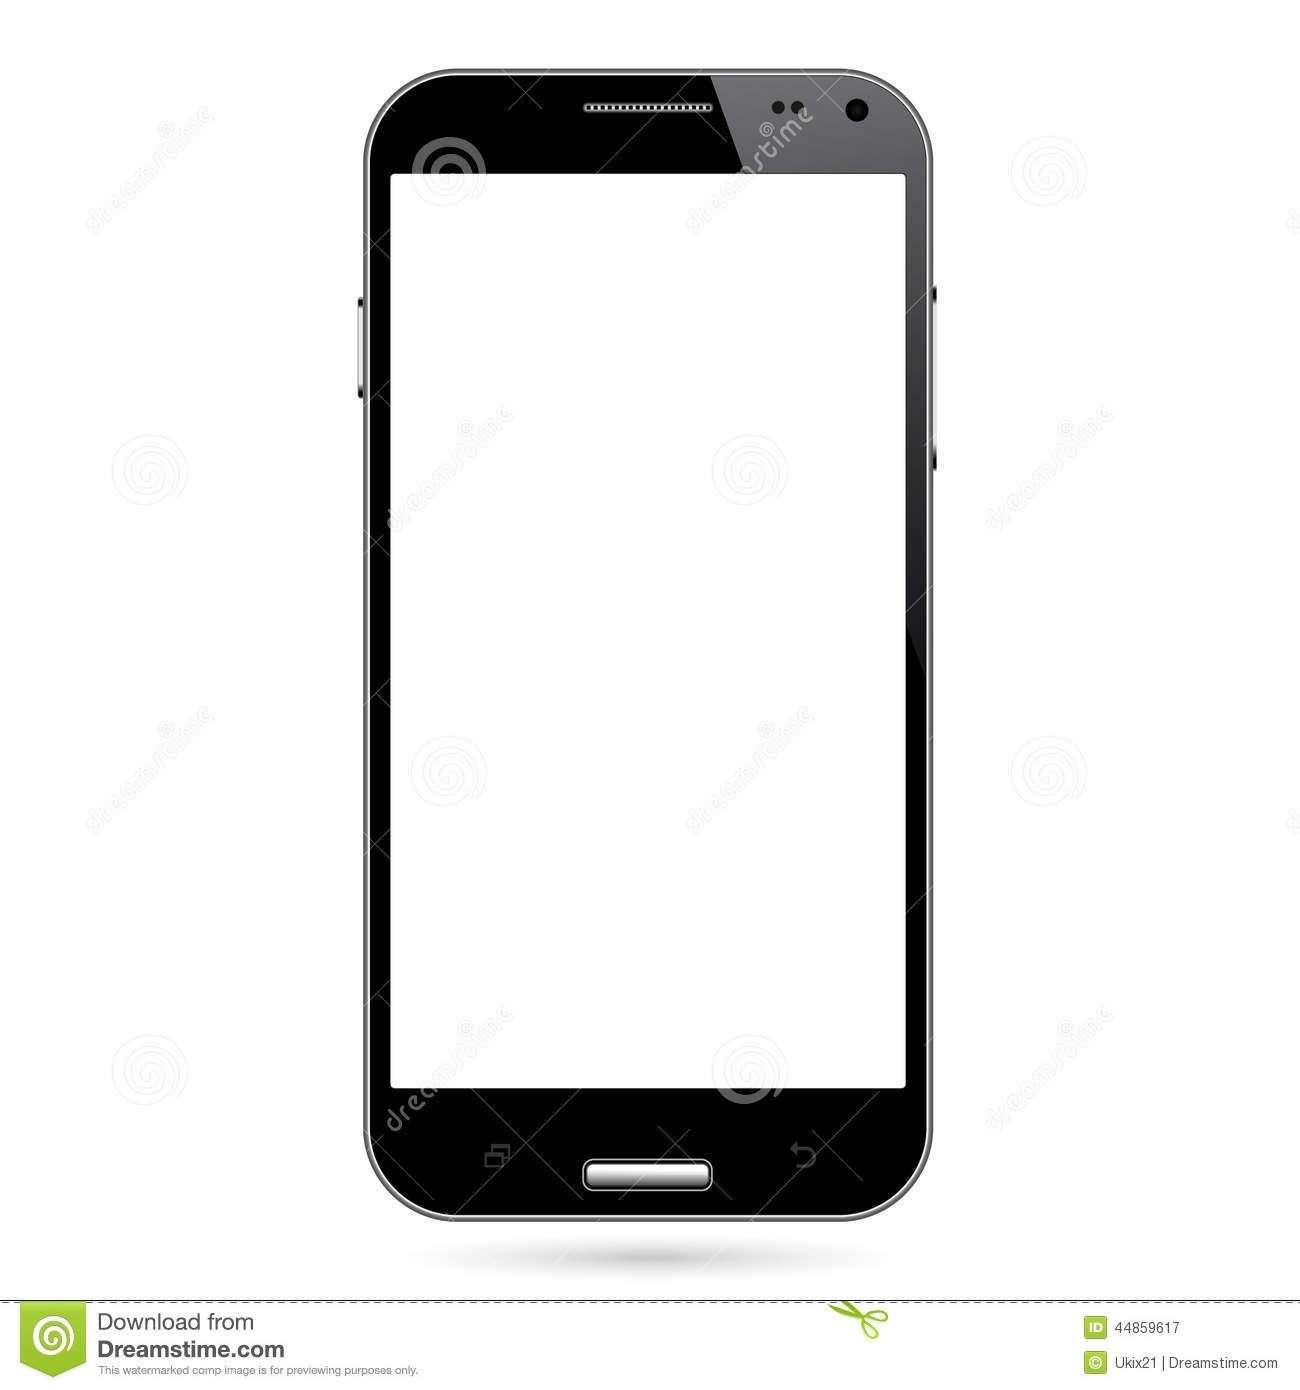 Iphone Wallpaper Icon Template Android Smart Phone Stock Vector Image 44859617